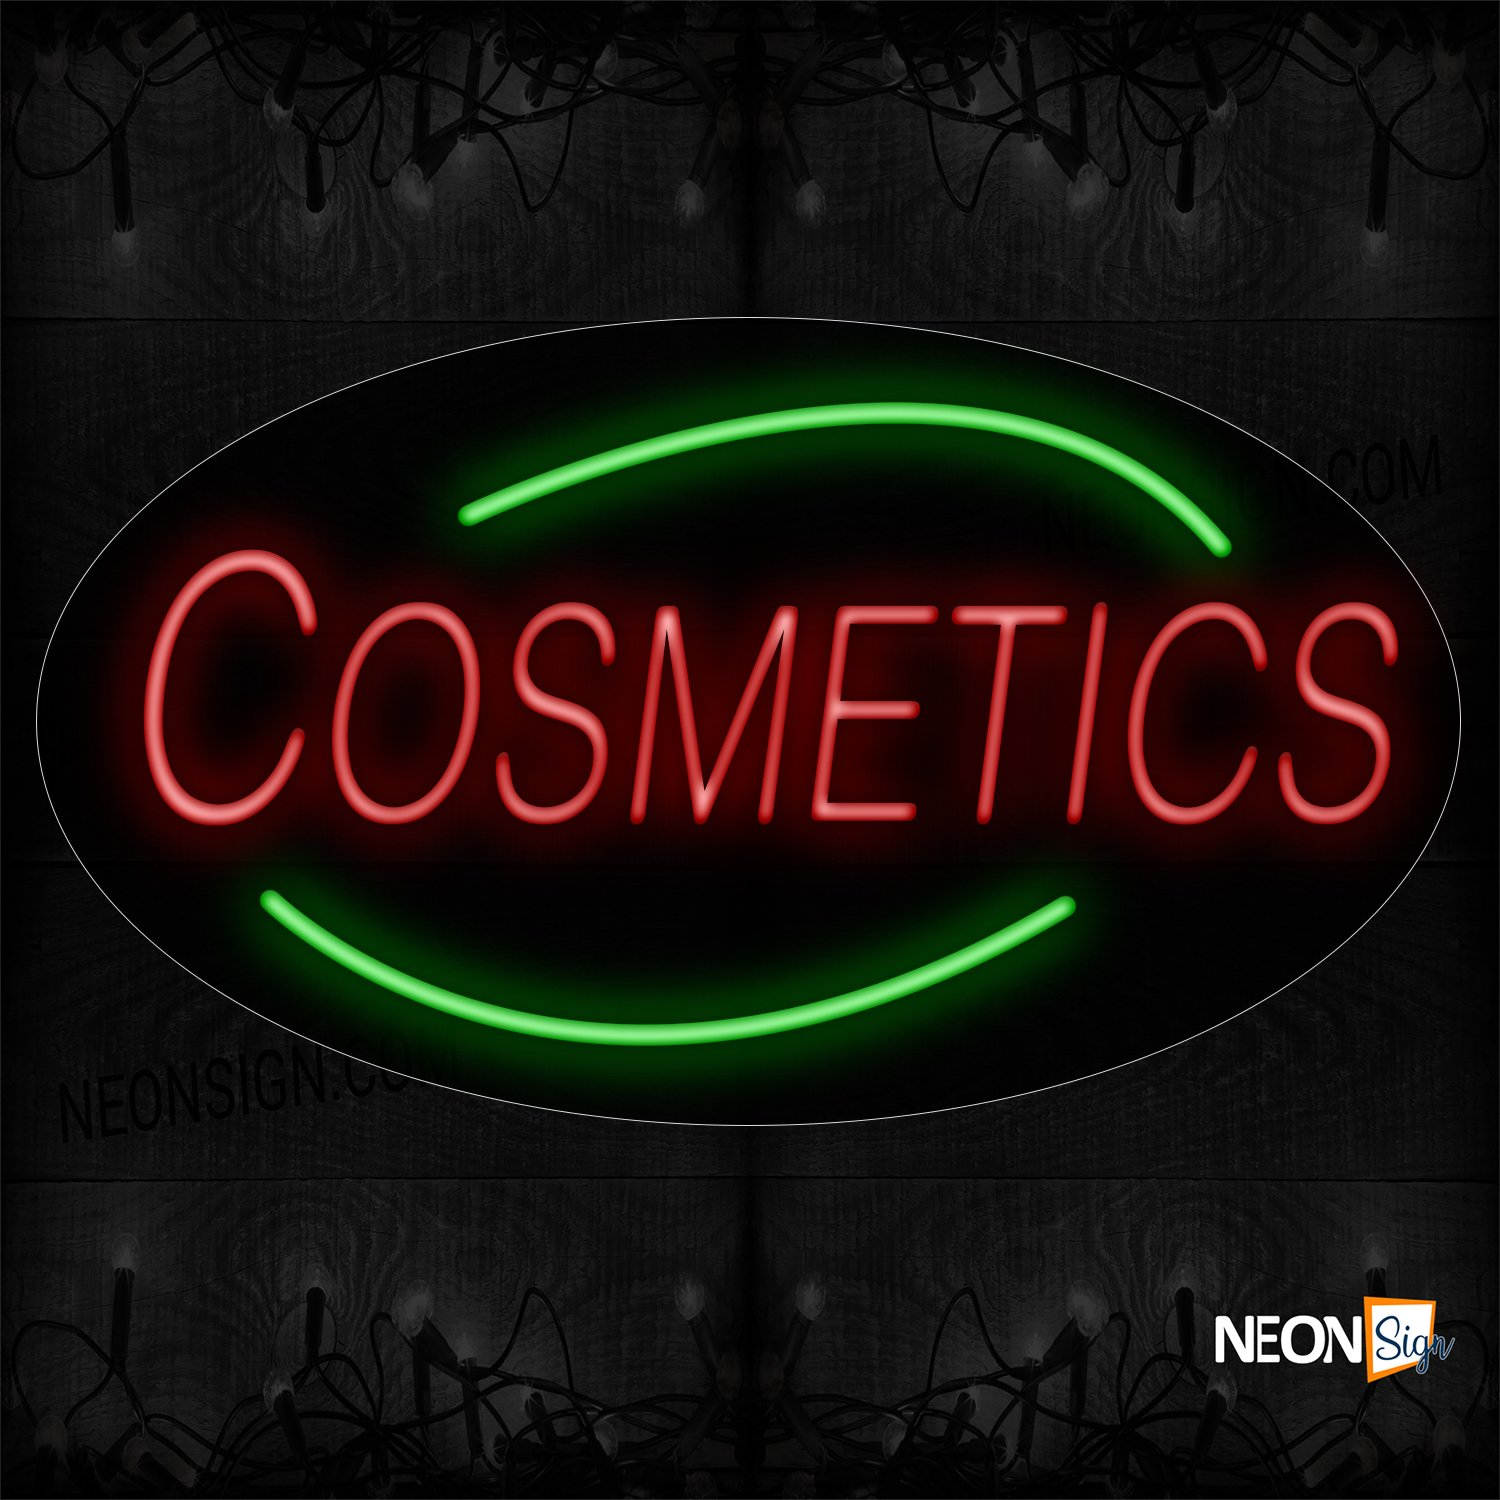 Image of 14439 Cosmetics With Curve Line Neon Signs_17x30 Contoured Black Backing